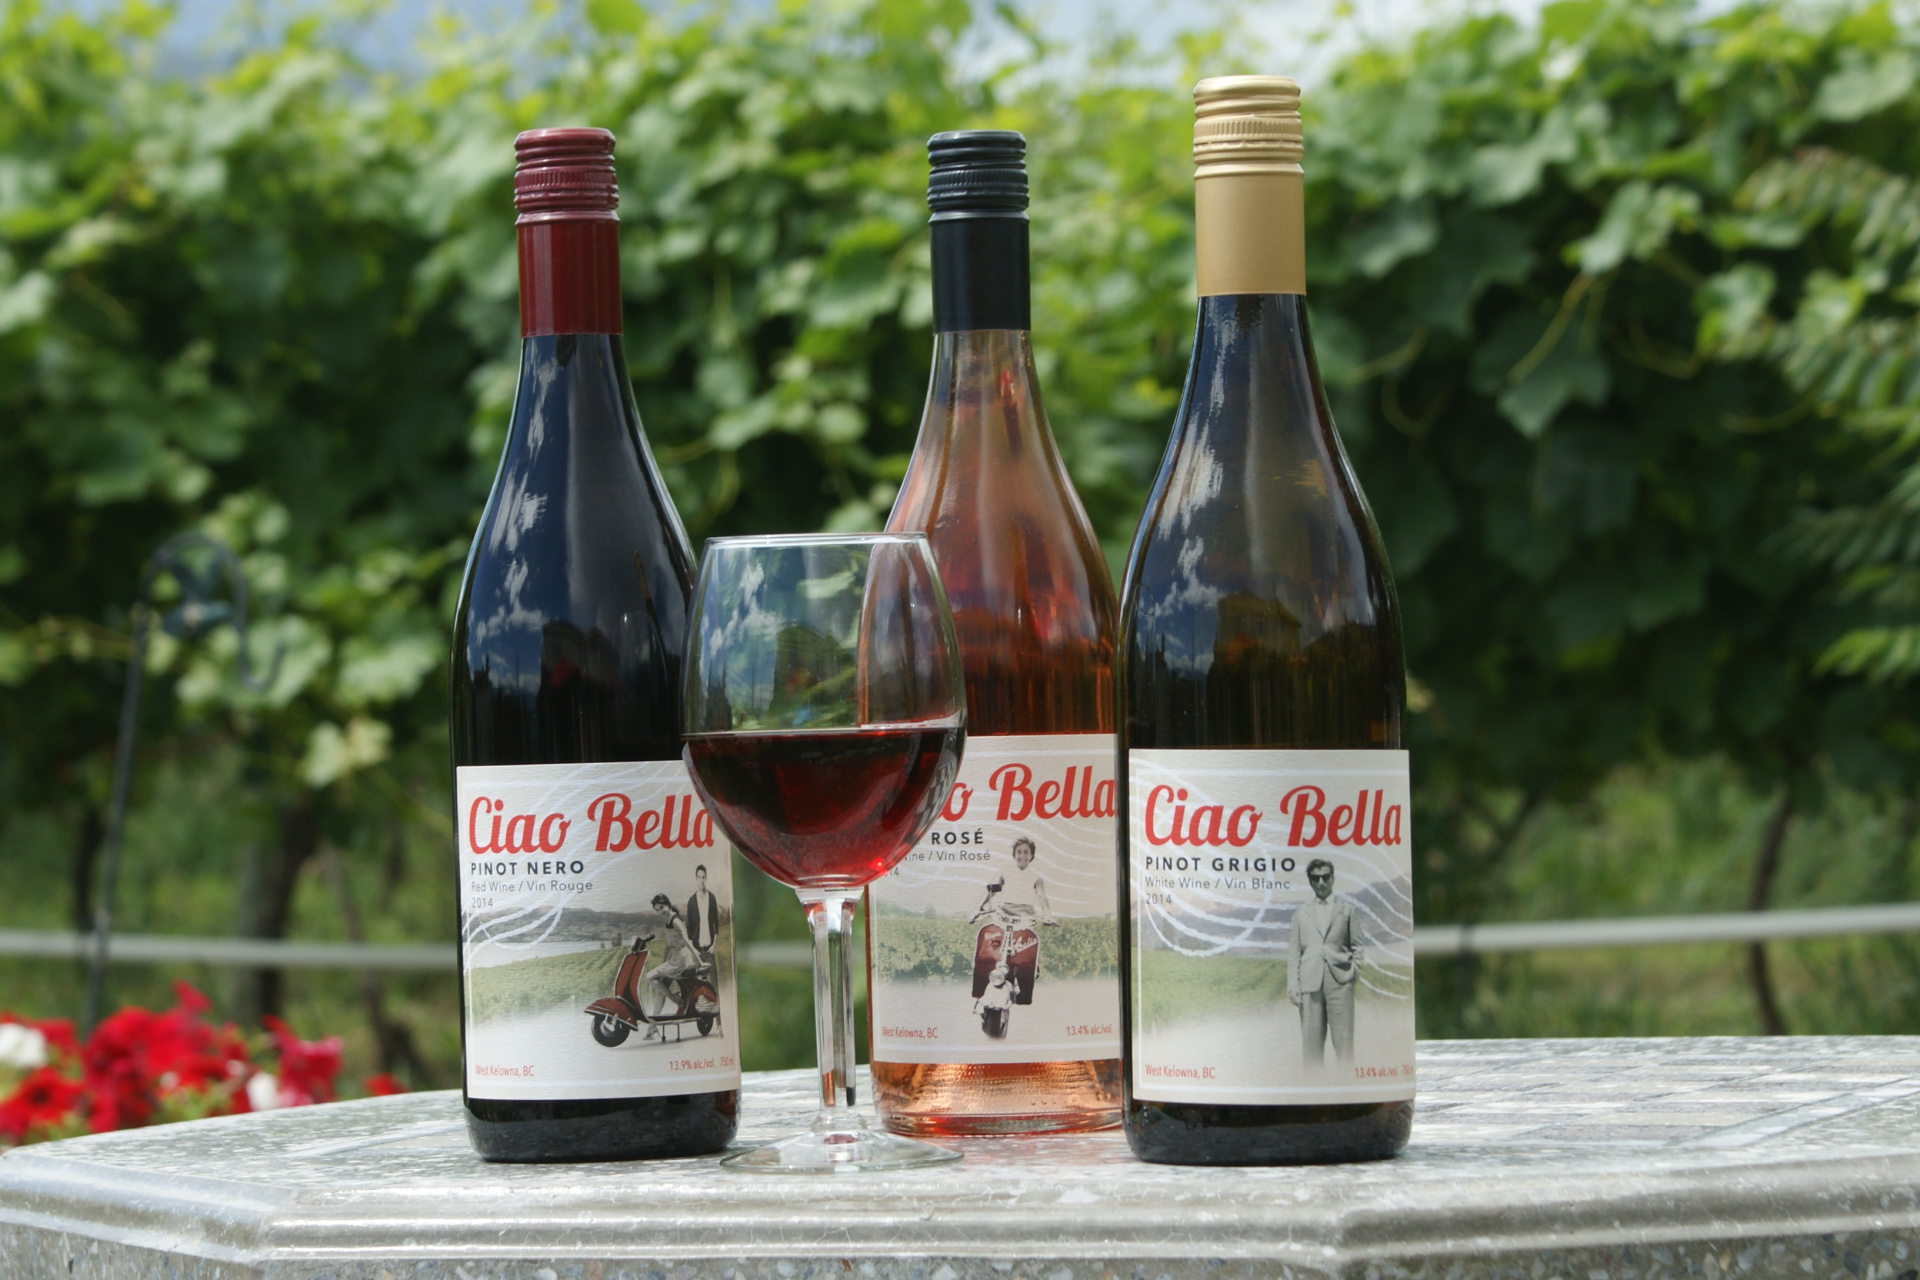 Award Winning Ciao Bella Wines